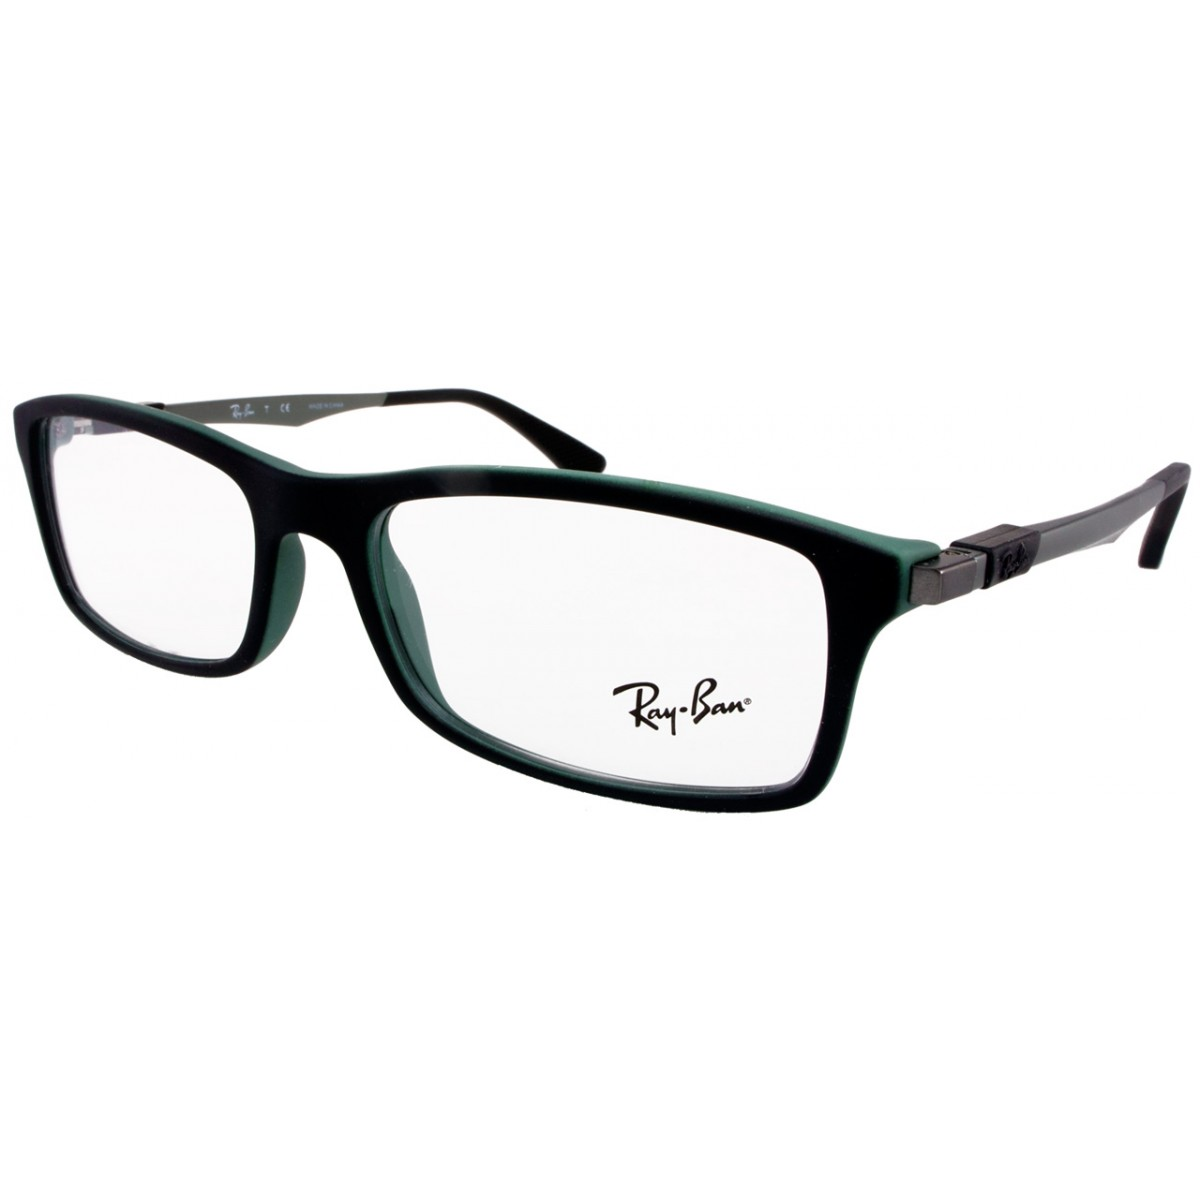 1485d29474 Online Eyeglasses with Customer Service Center in California Ray Ban ...